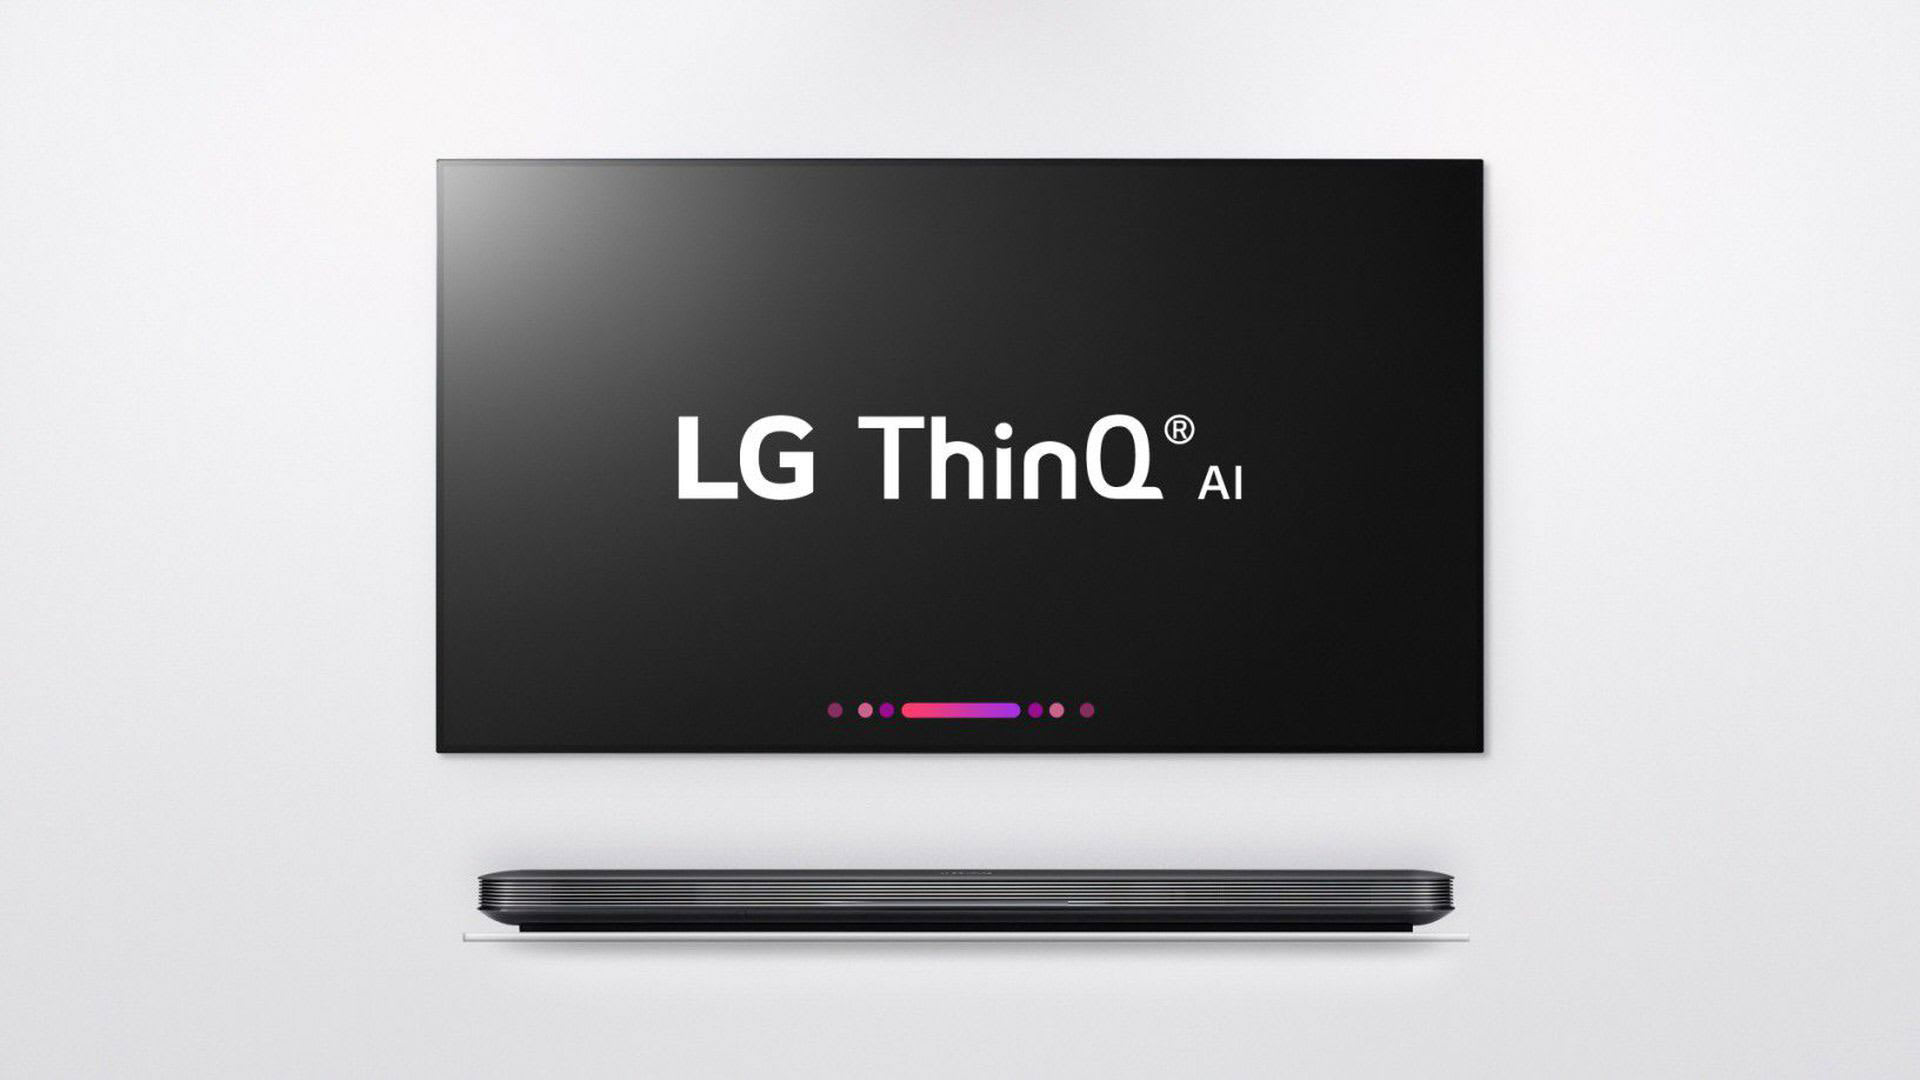 Lgs 2018 Tvs Now Work With Amazon Alexa